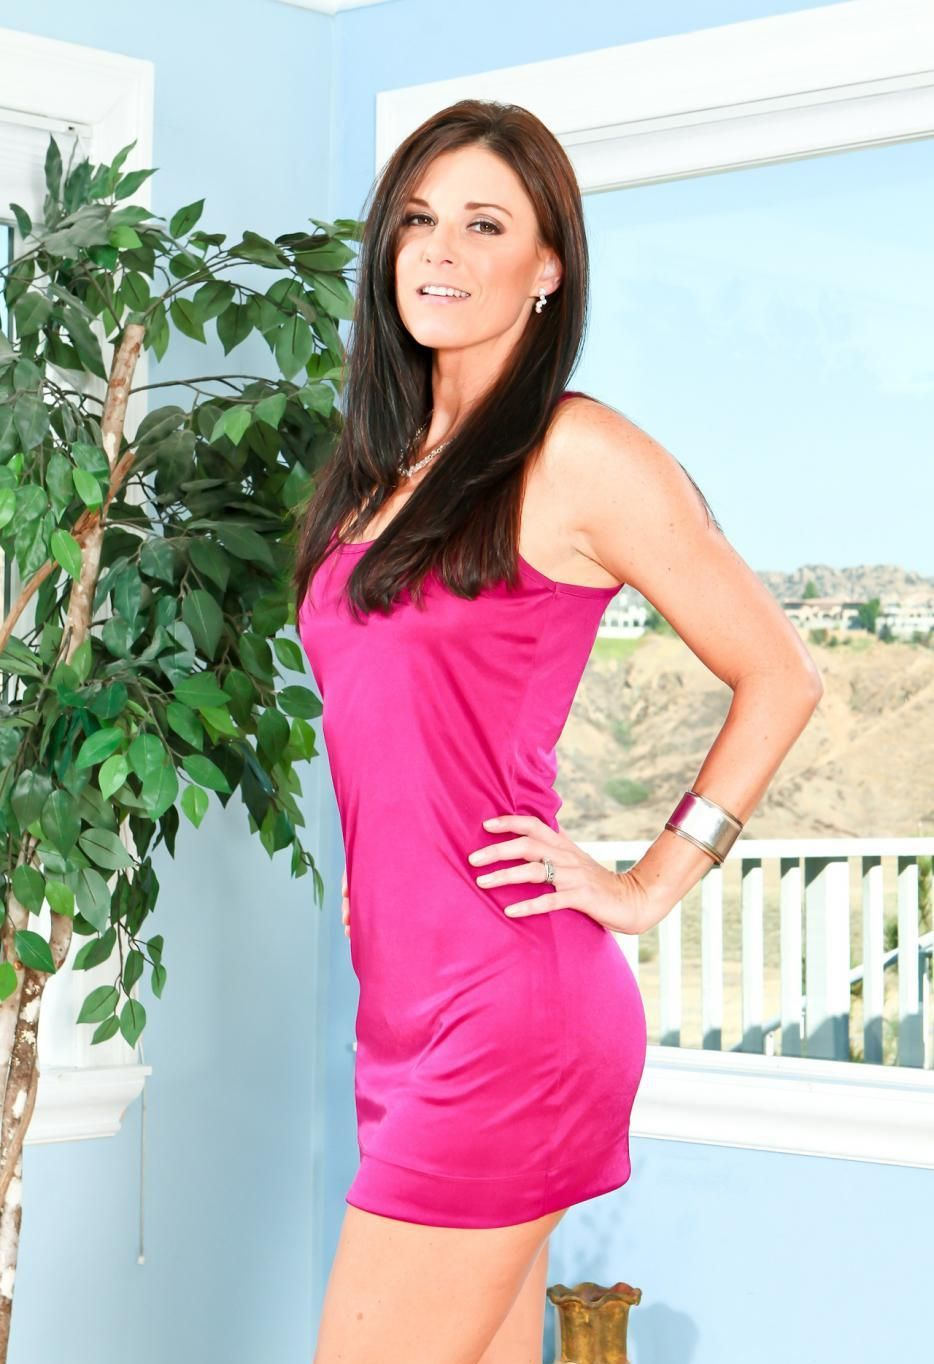 ♤ India Summer #Pornstar #Milf #Sexy | INDIA SUMMER | Pinterest